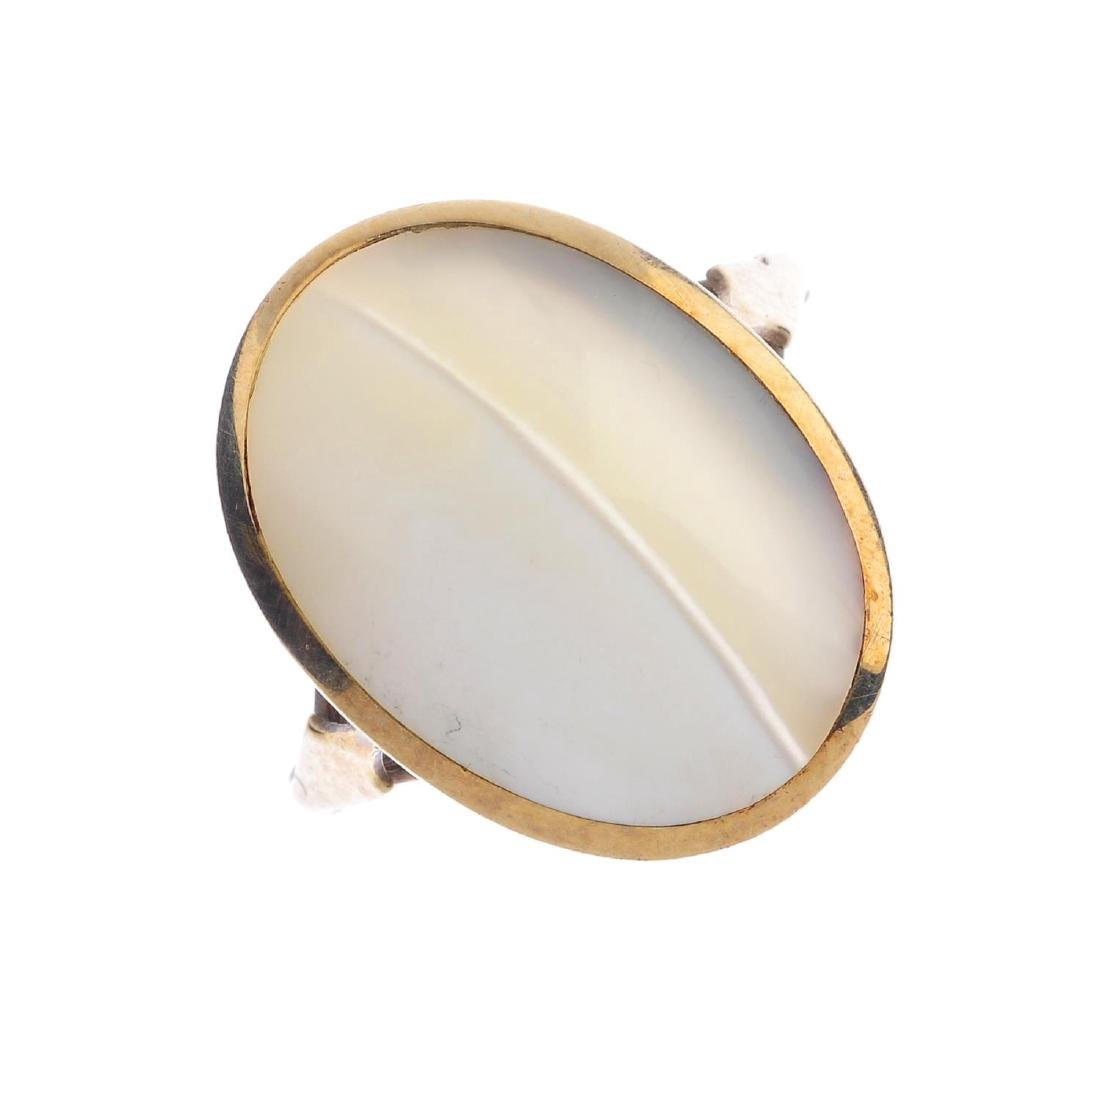 A 9ct gold mother-of-pearl ring. The oval